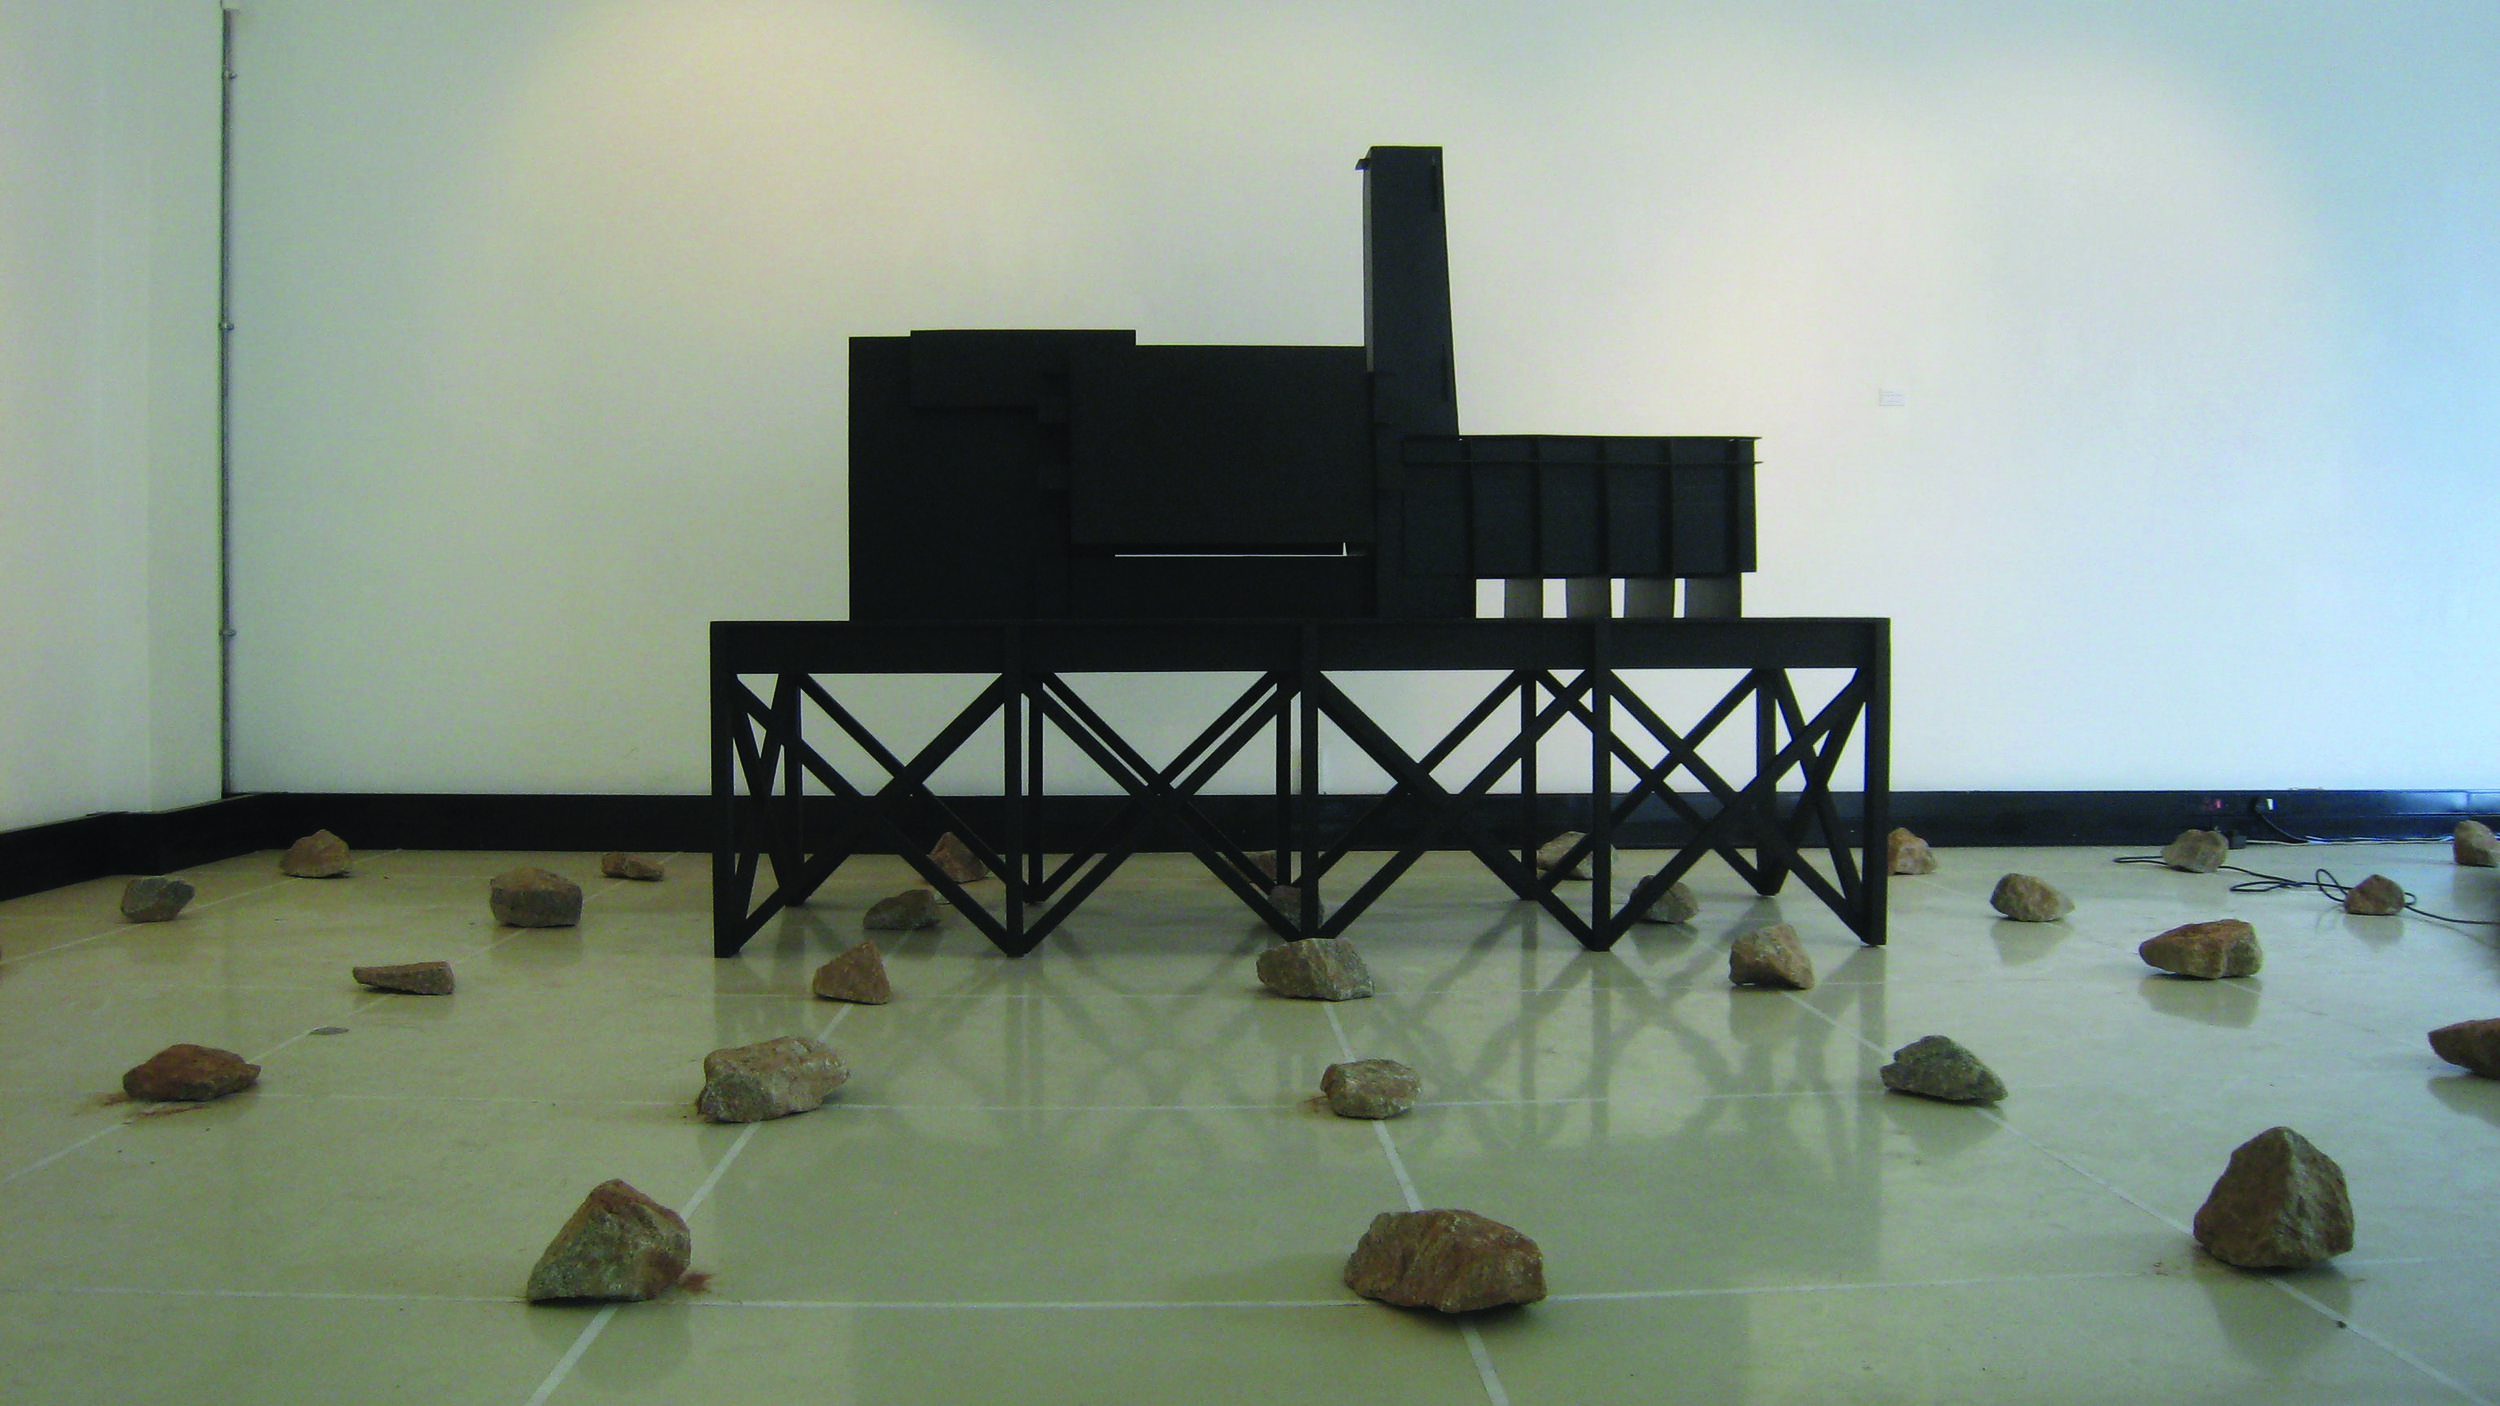 Phillip Raiford Johnson__Blackhouse-Thoughts about a machine_ 2009_corrugated plastic and wood (2).jpg